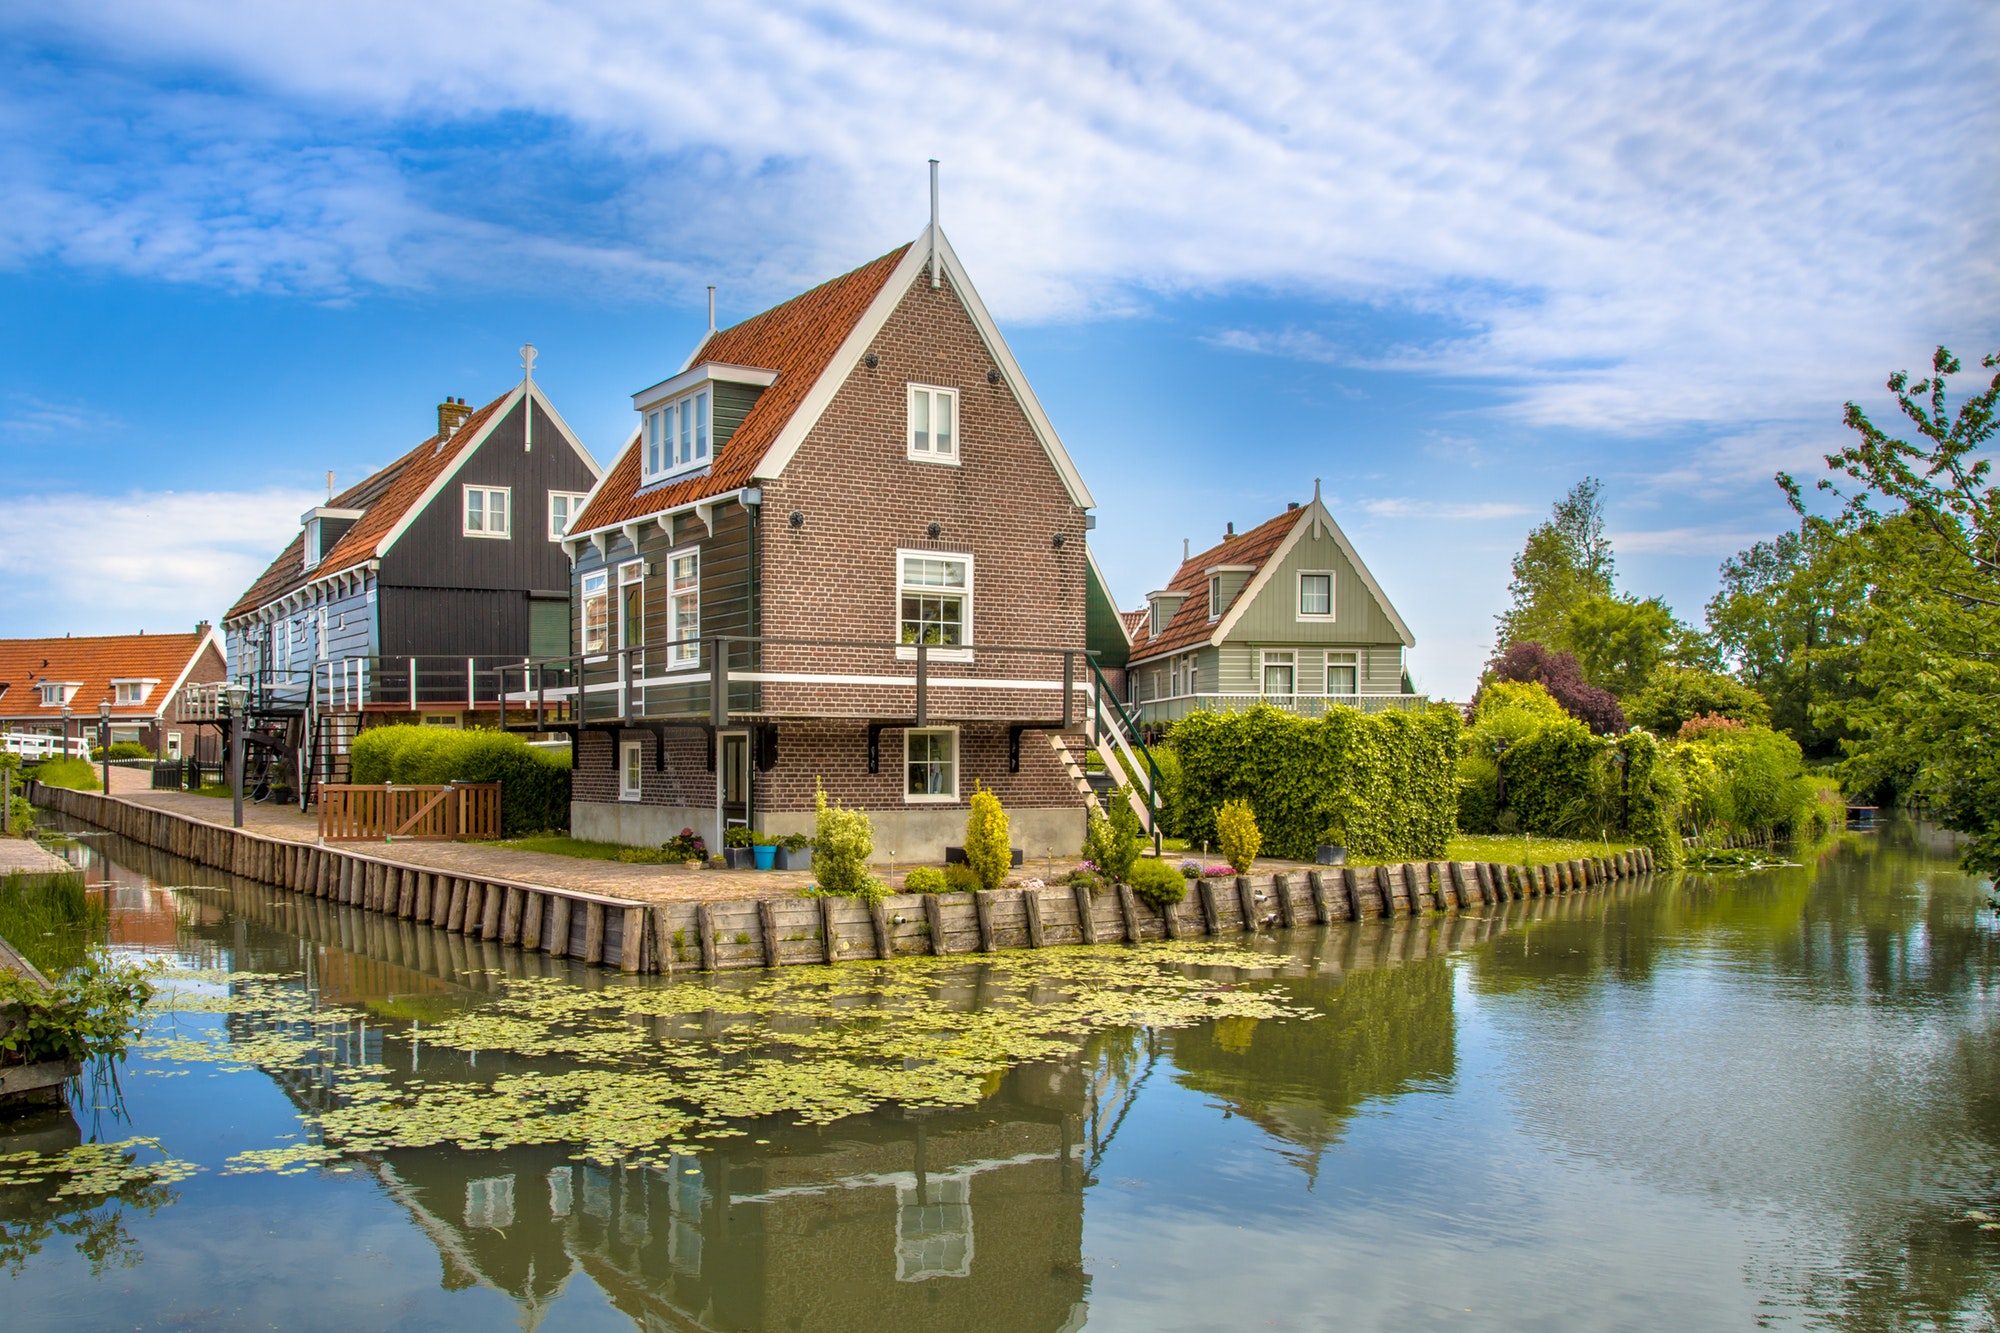 Beautiful typical fisherman village houses in Marken island